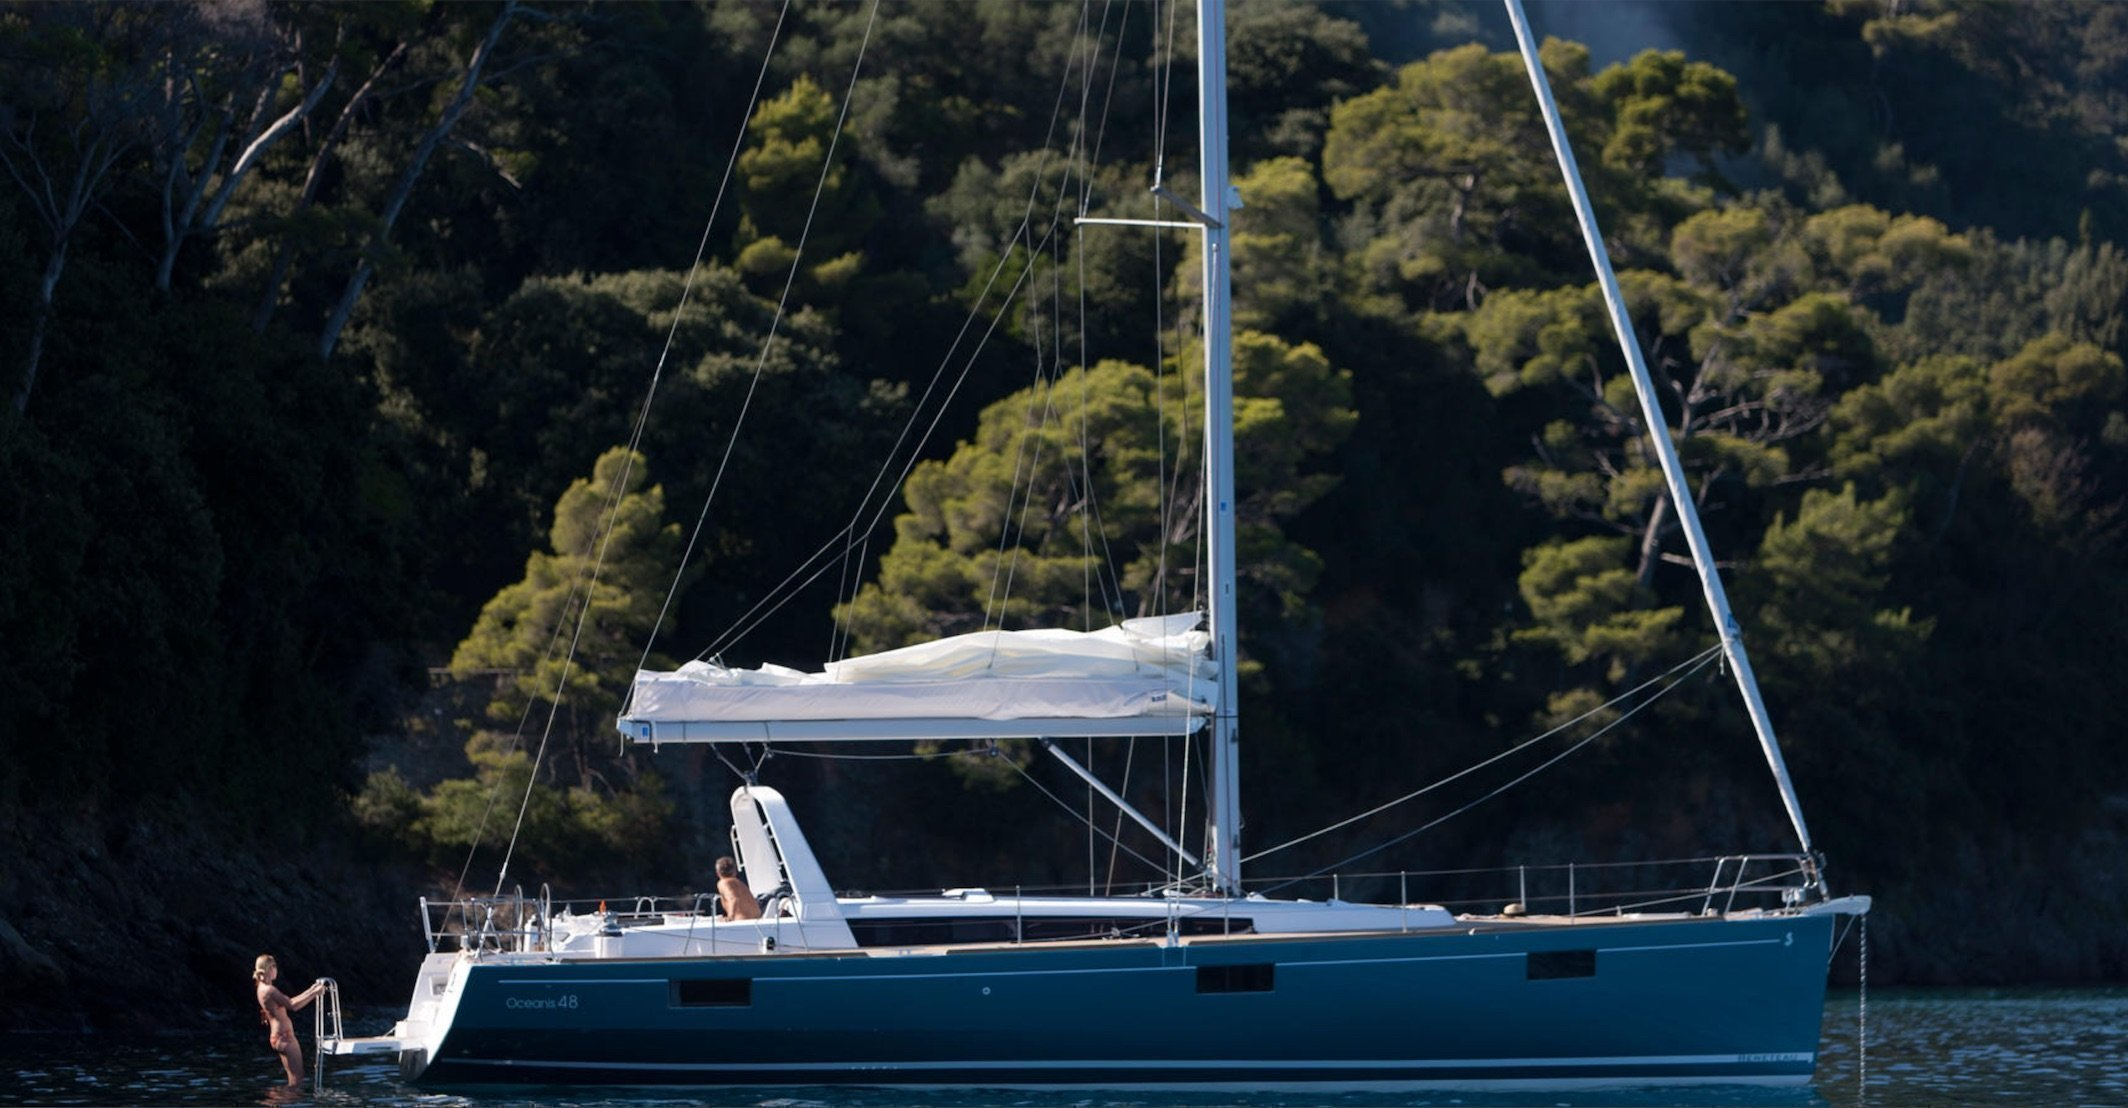 Oceanis 48 (Tinos. Private Charter (8 pax) FULLY CREWED, ALL EXPENSES INCLUDED)  - 3